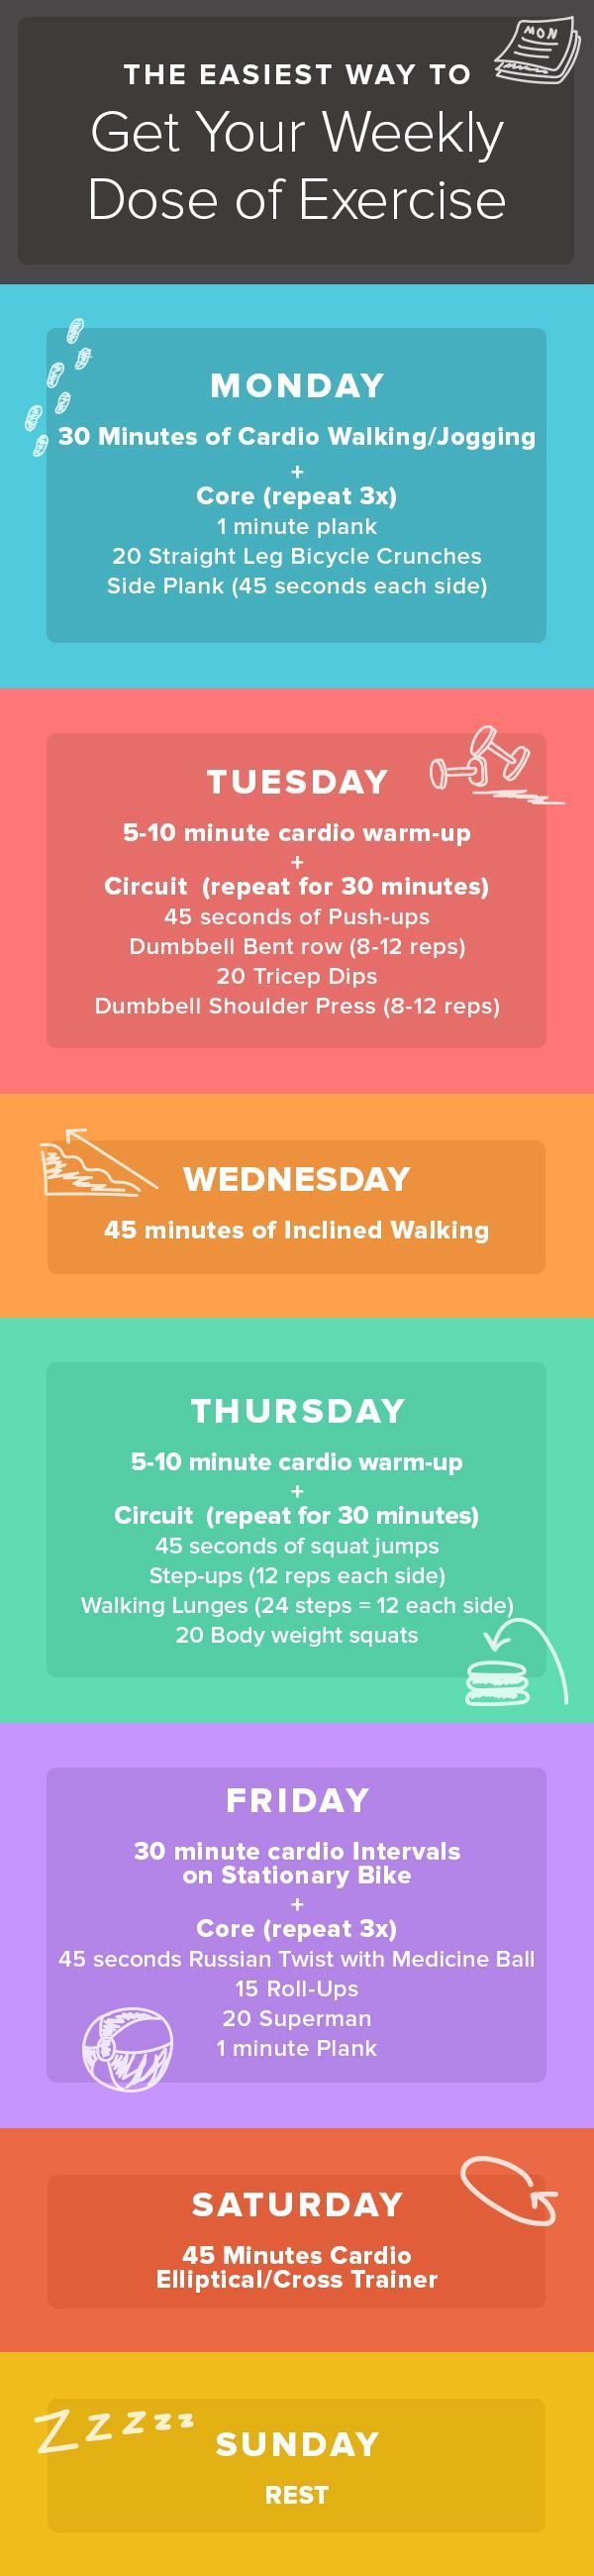 Follow this guide for getting in the recommended 2.5 hours exercises to maintain a healthy heart. This cardio strengthening  routine is easy to follow. No gym is required. #fitness